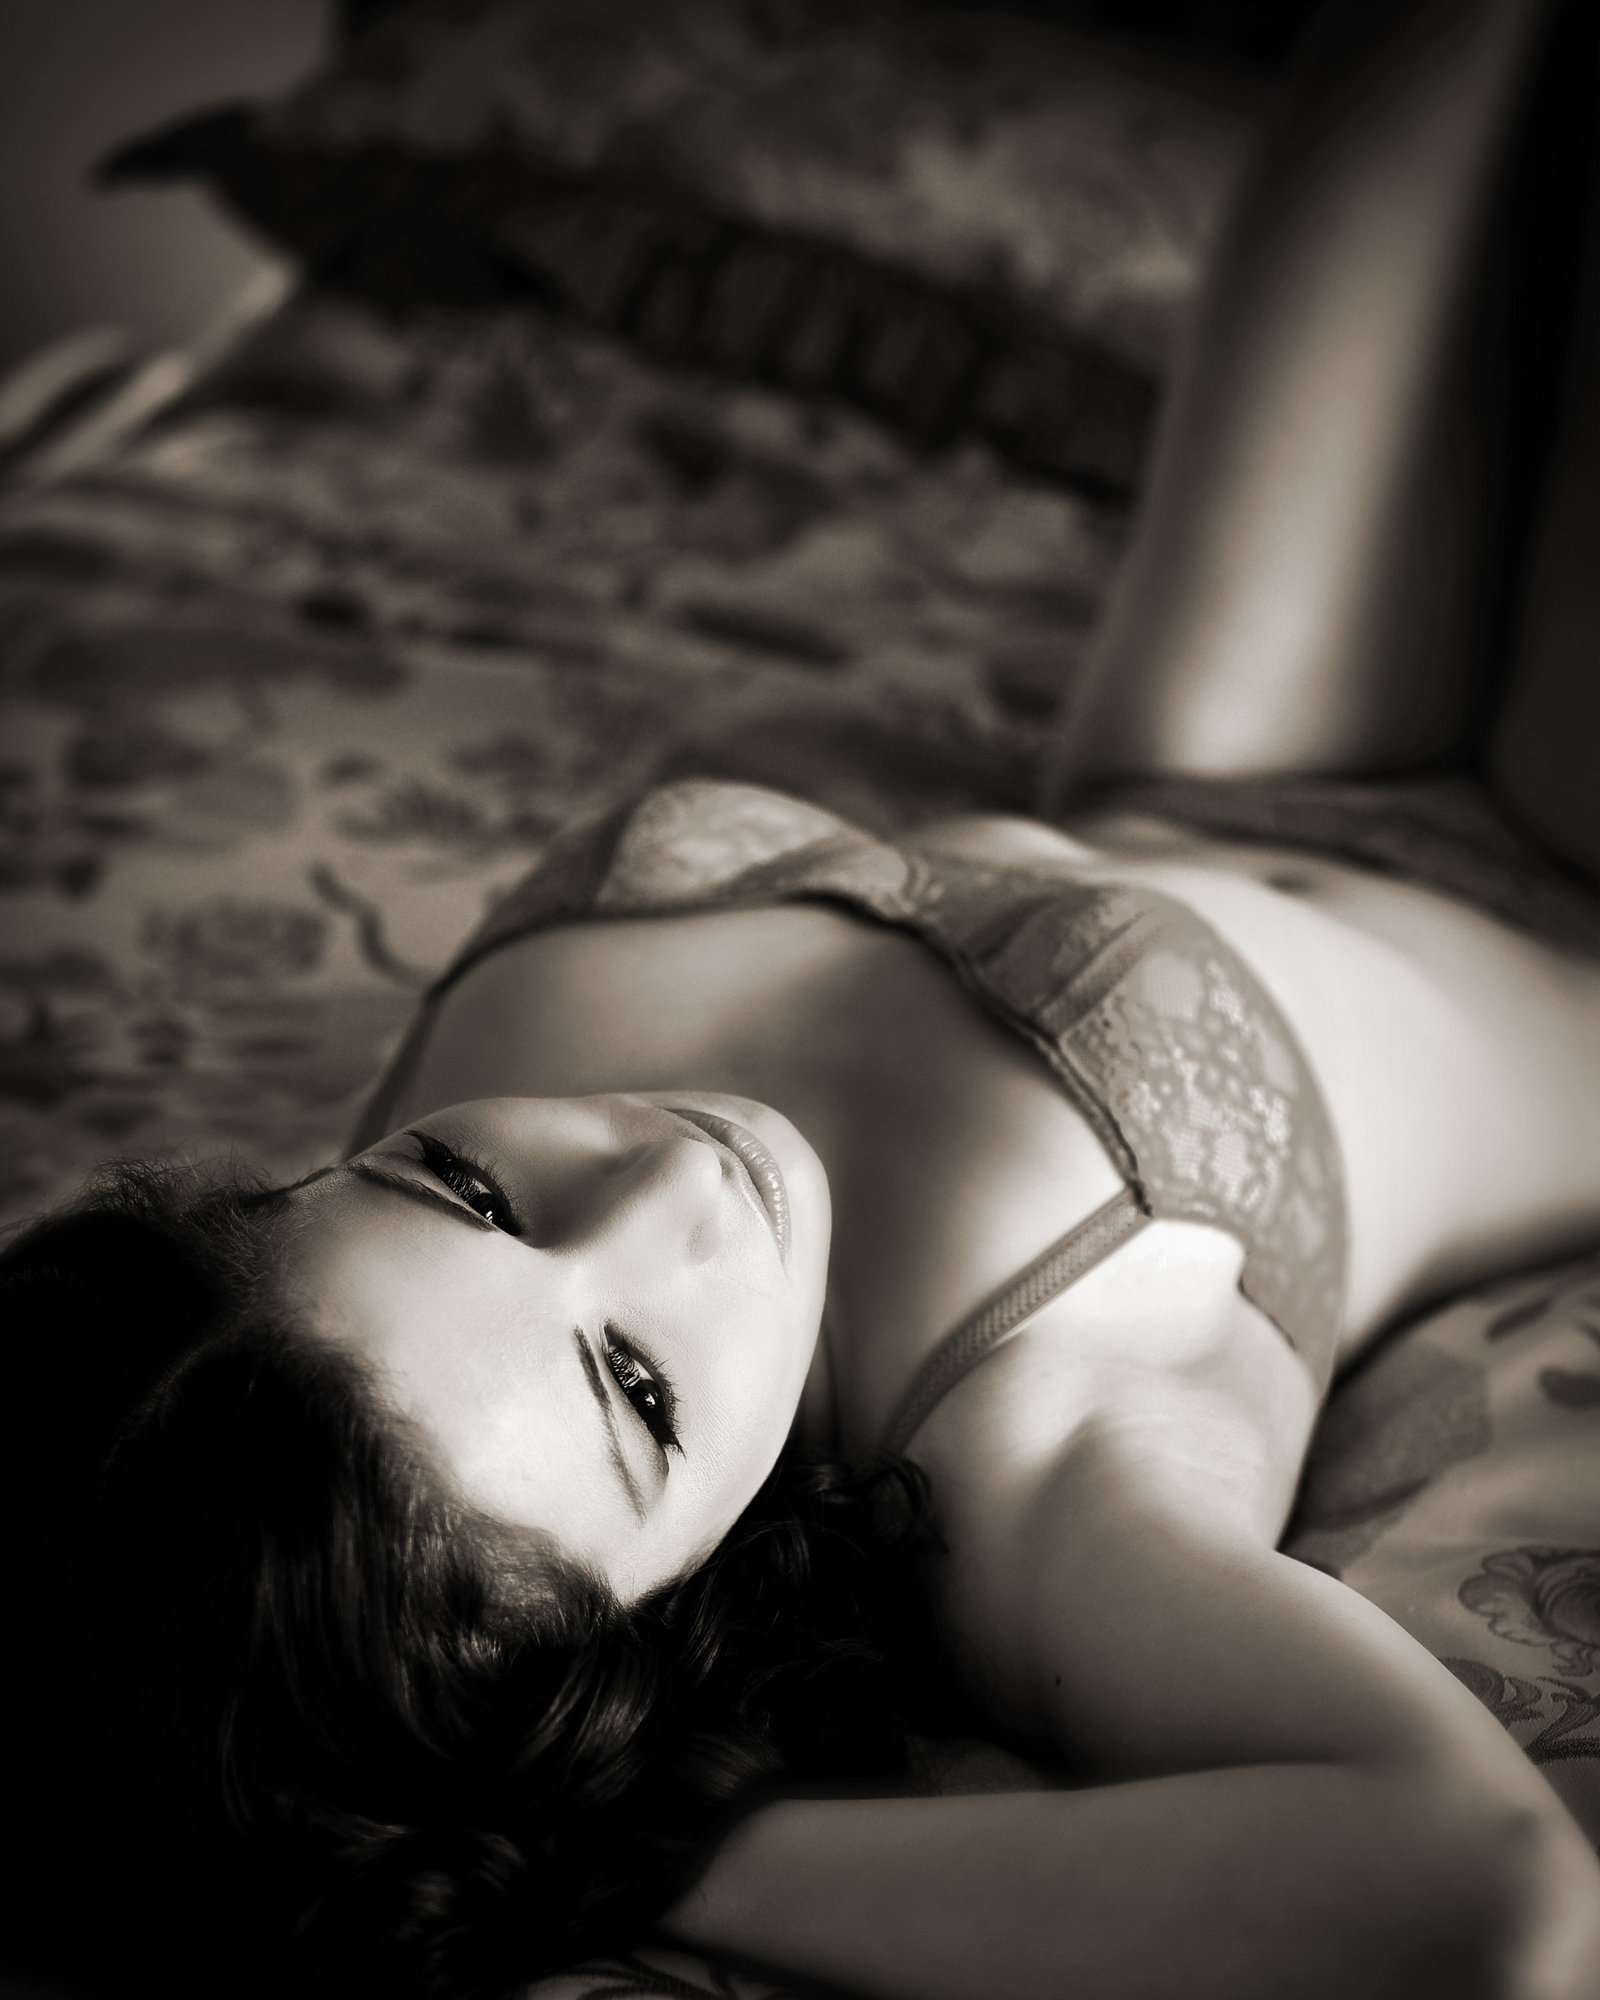 minneapolis-boudoir-photography-011